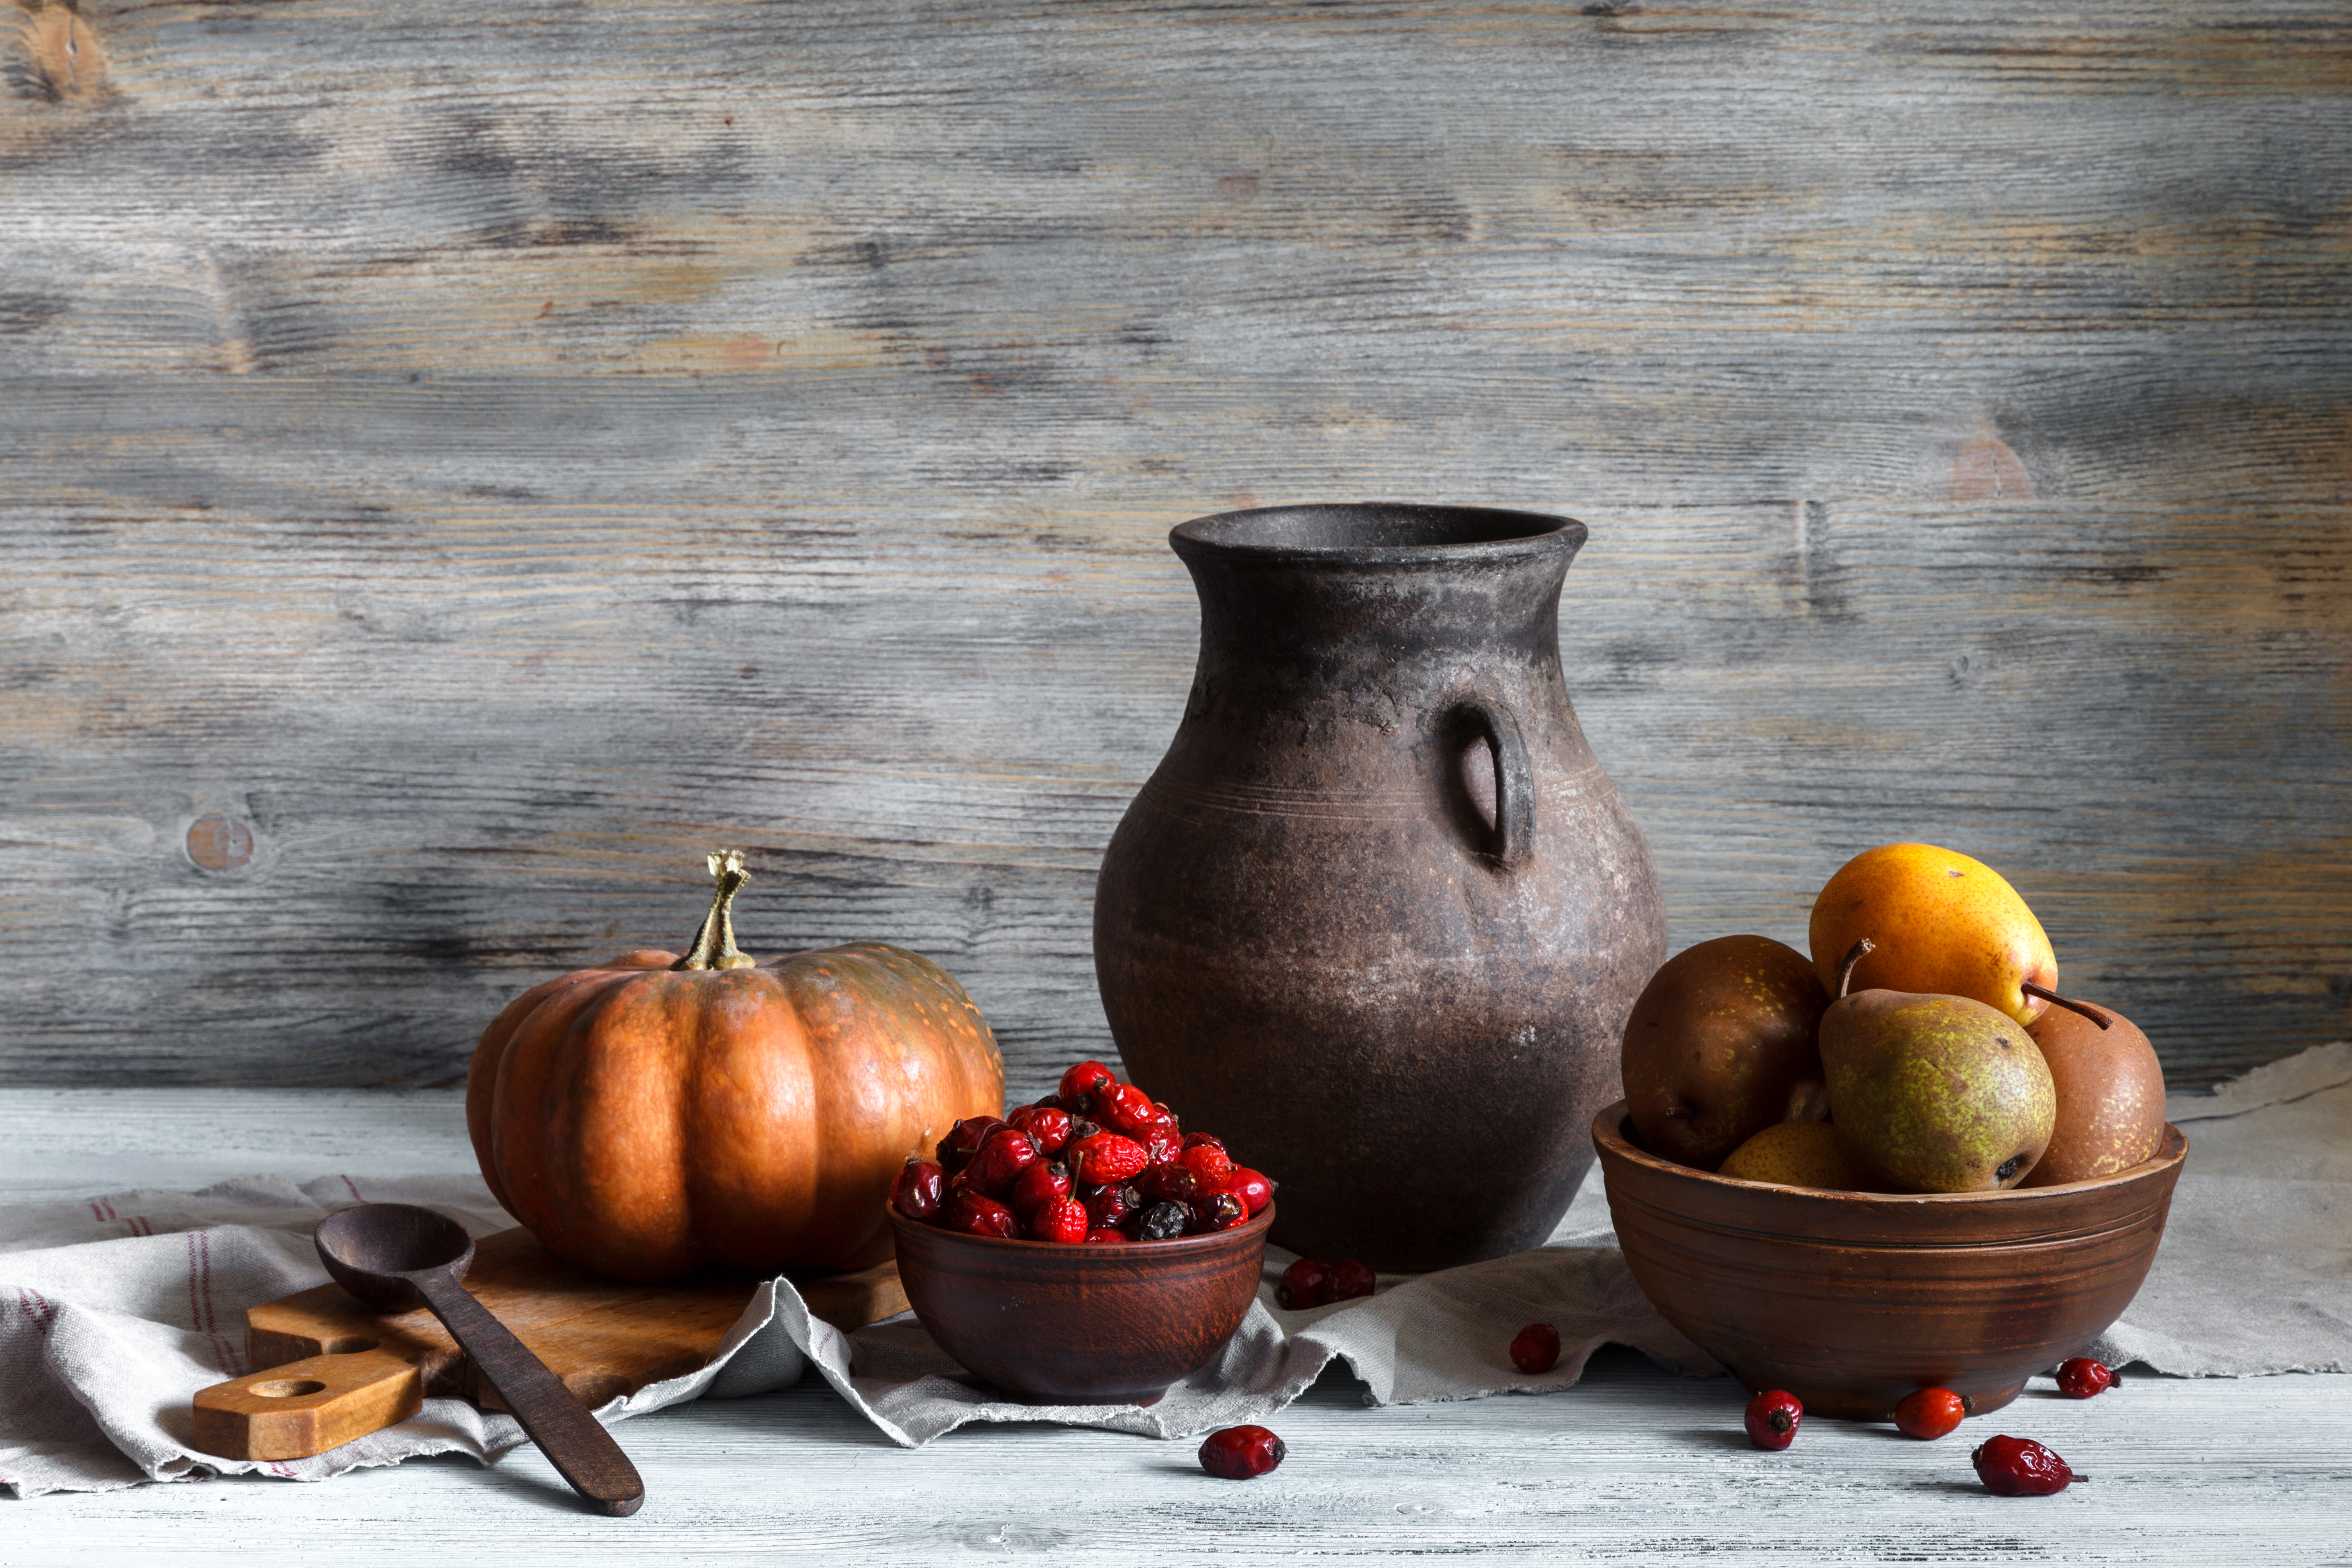 Still Life 8k Ultra HD Wallpaper And Background Image